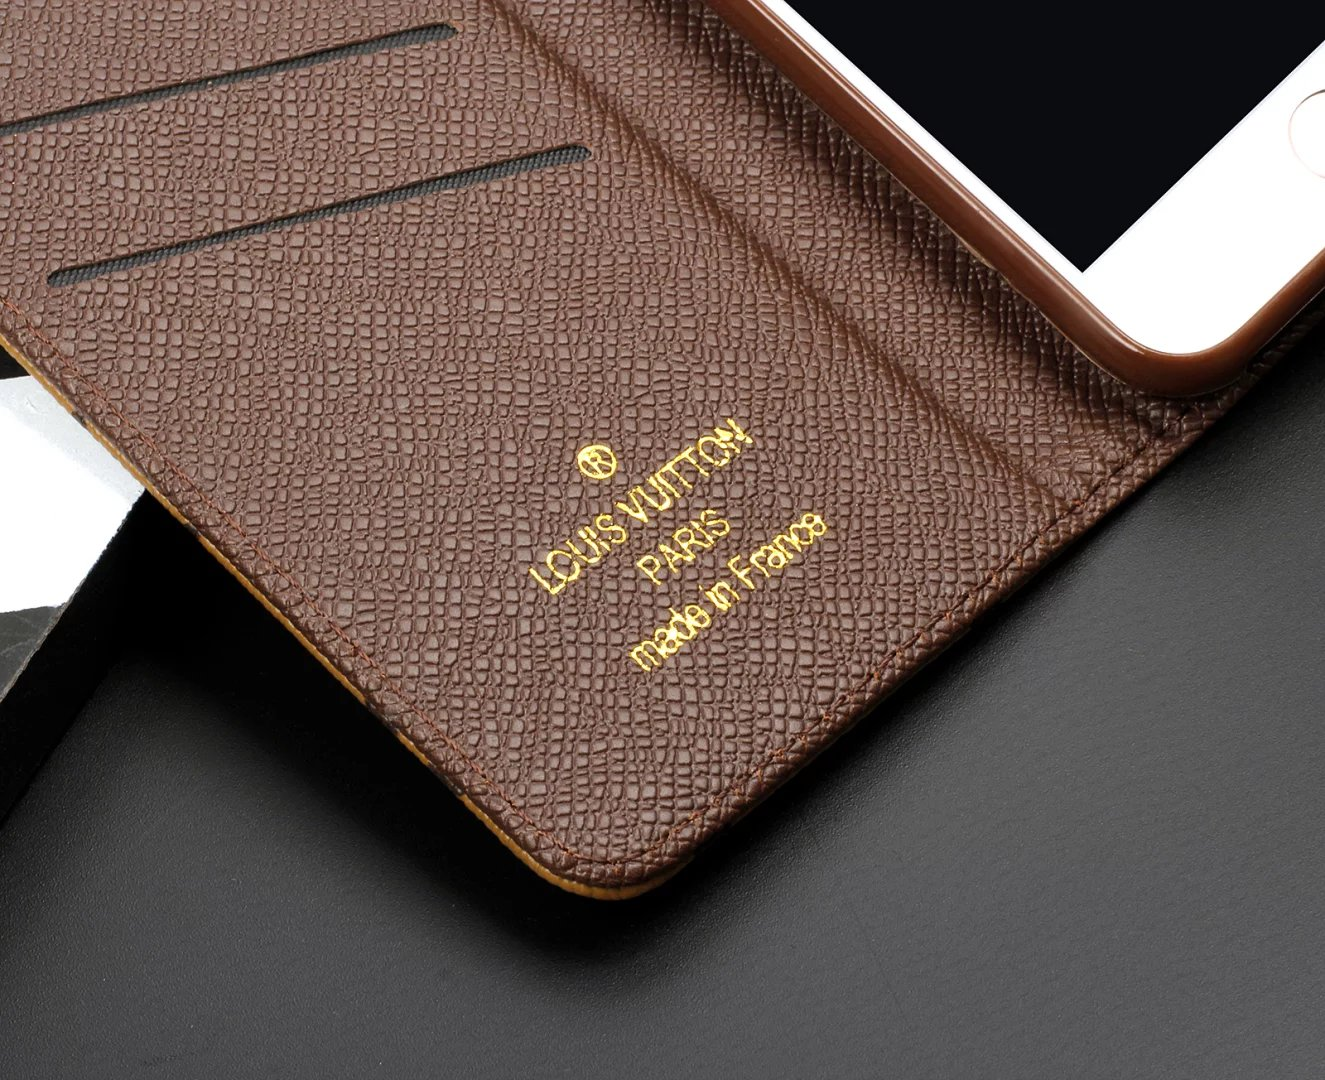 iphone 8 Plus cases for sale personalized phone cases iphone 8 Plus Louis Vuitton iphone 8 Plus case phone cases 8 Plus iphone case custom iPhone 8 Plusg cover logitech iphone case iphone cases iPhone 8 Plus iphone covers and cases india